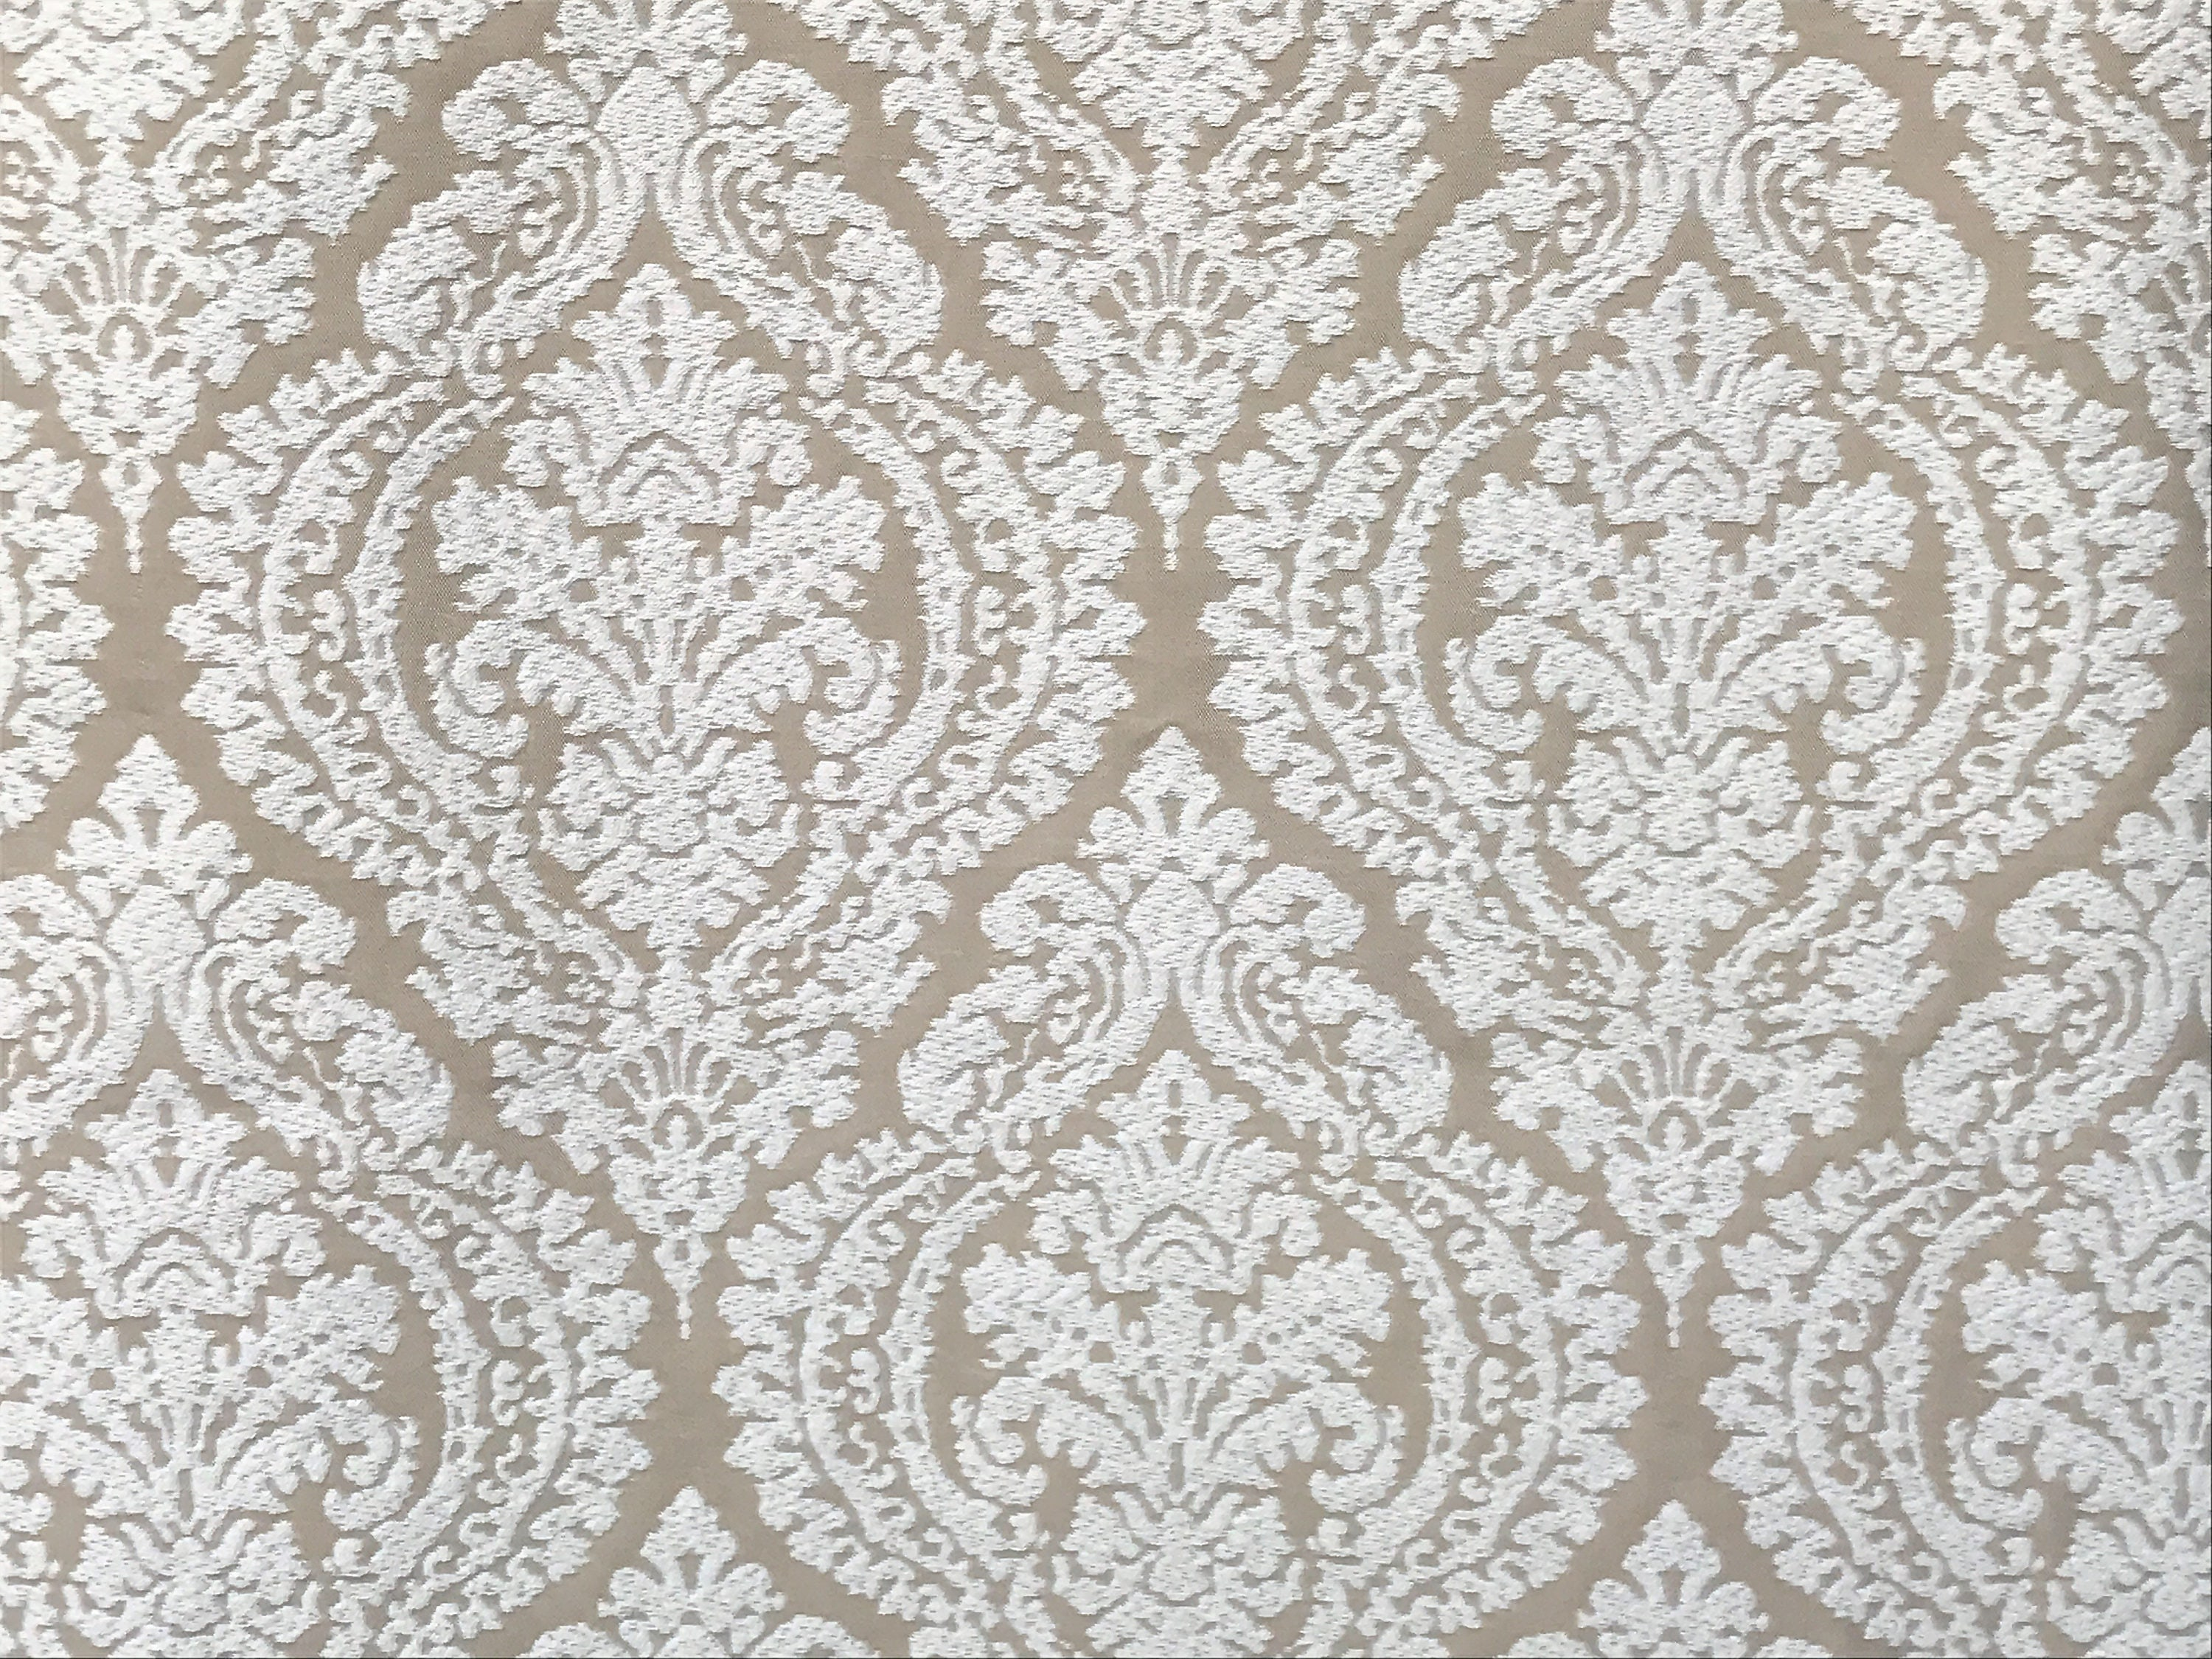 Champagne And Ivory Damask Curtain Fabric By The Yard Upholstery ...